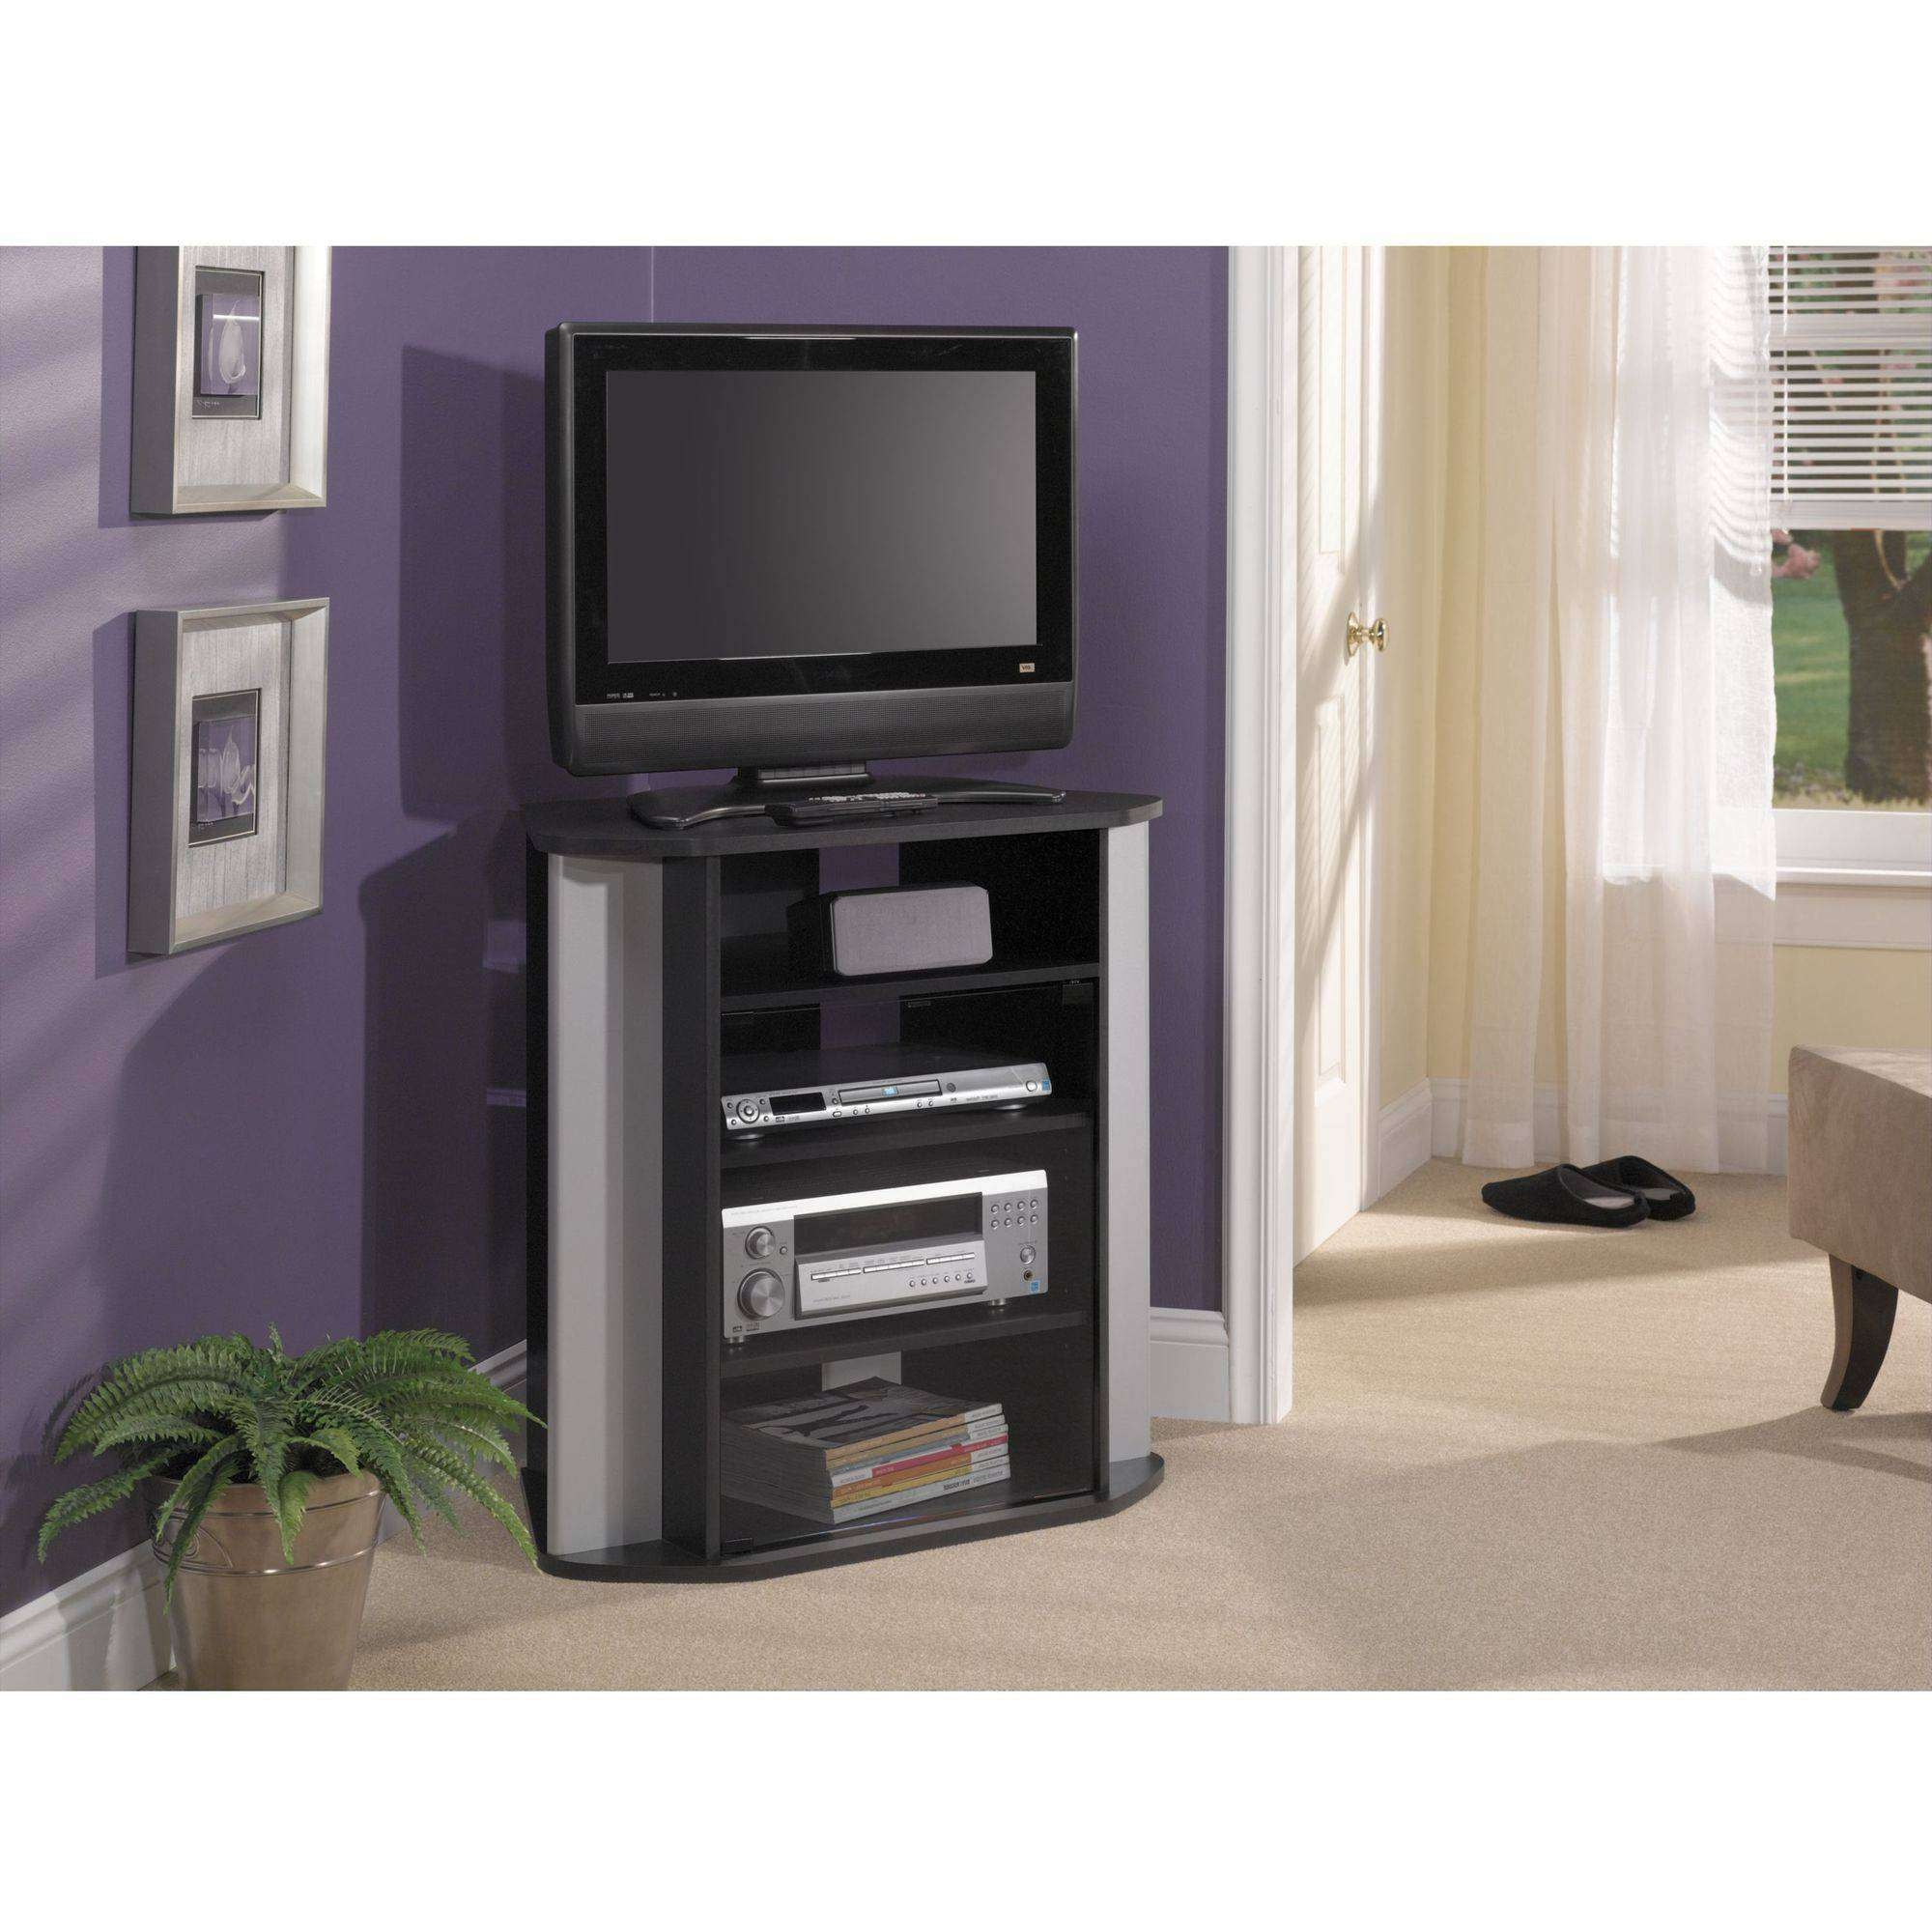 Bush Visions Black Tall Corner Tv Stand, For Tvs Up To 37 Intended For Tall Tv Cabinets Corner Unit (View 3 of 20)